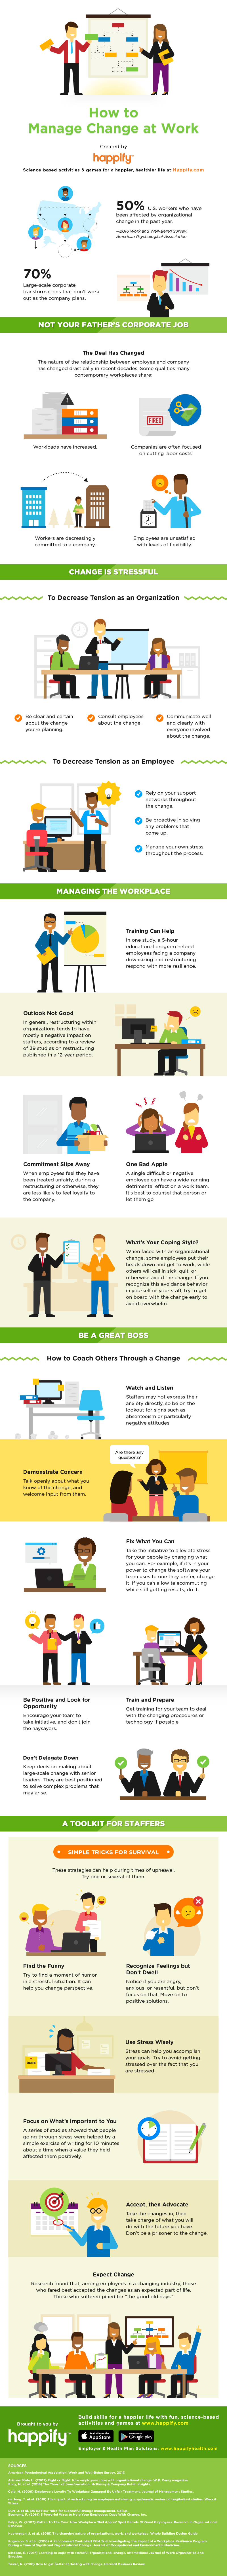 How to Manage Change in the Workplace - #infographic